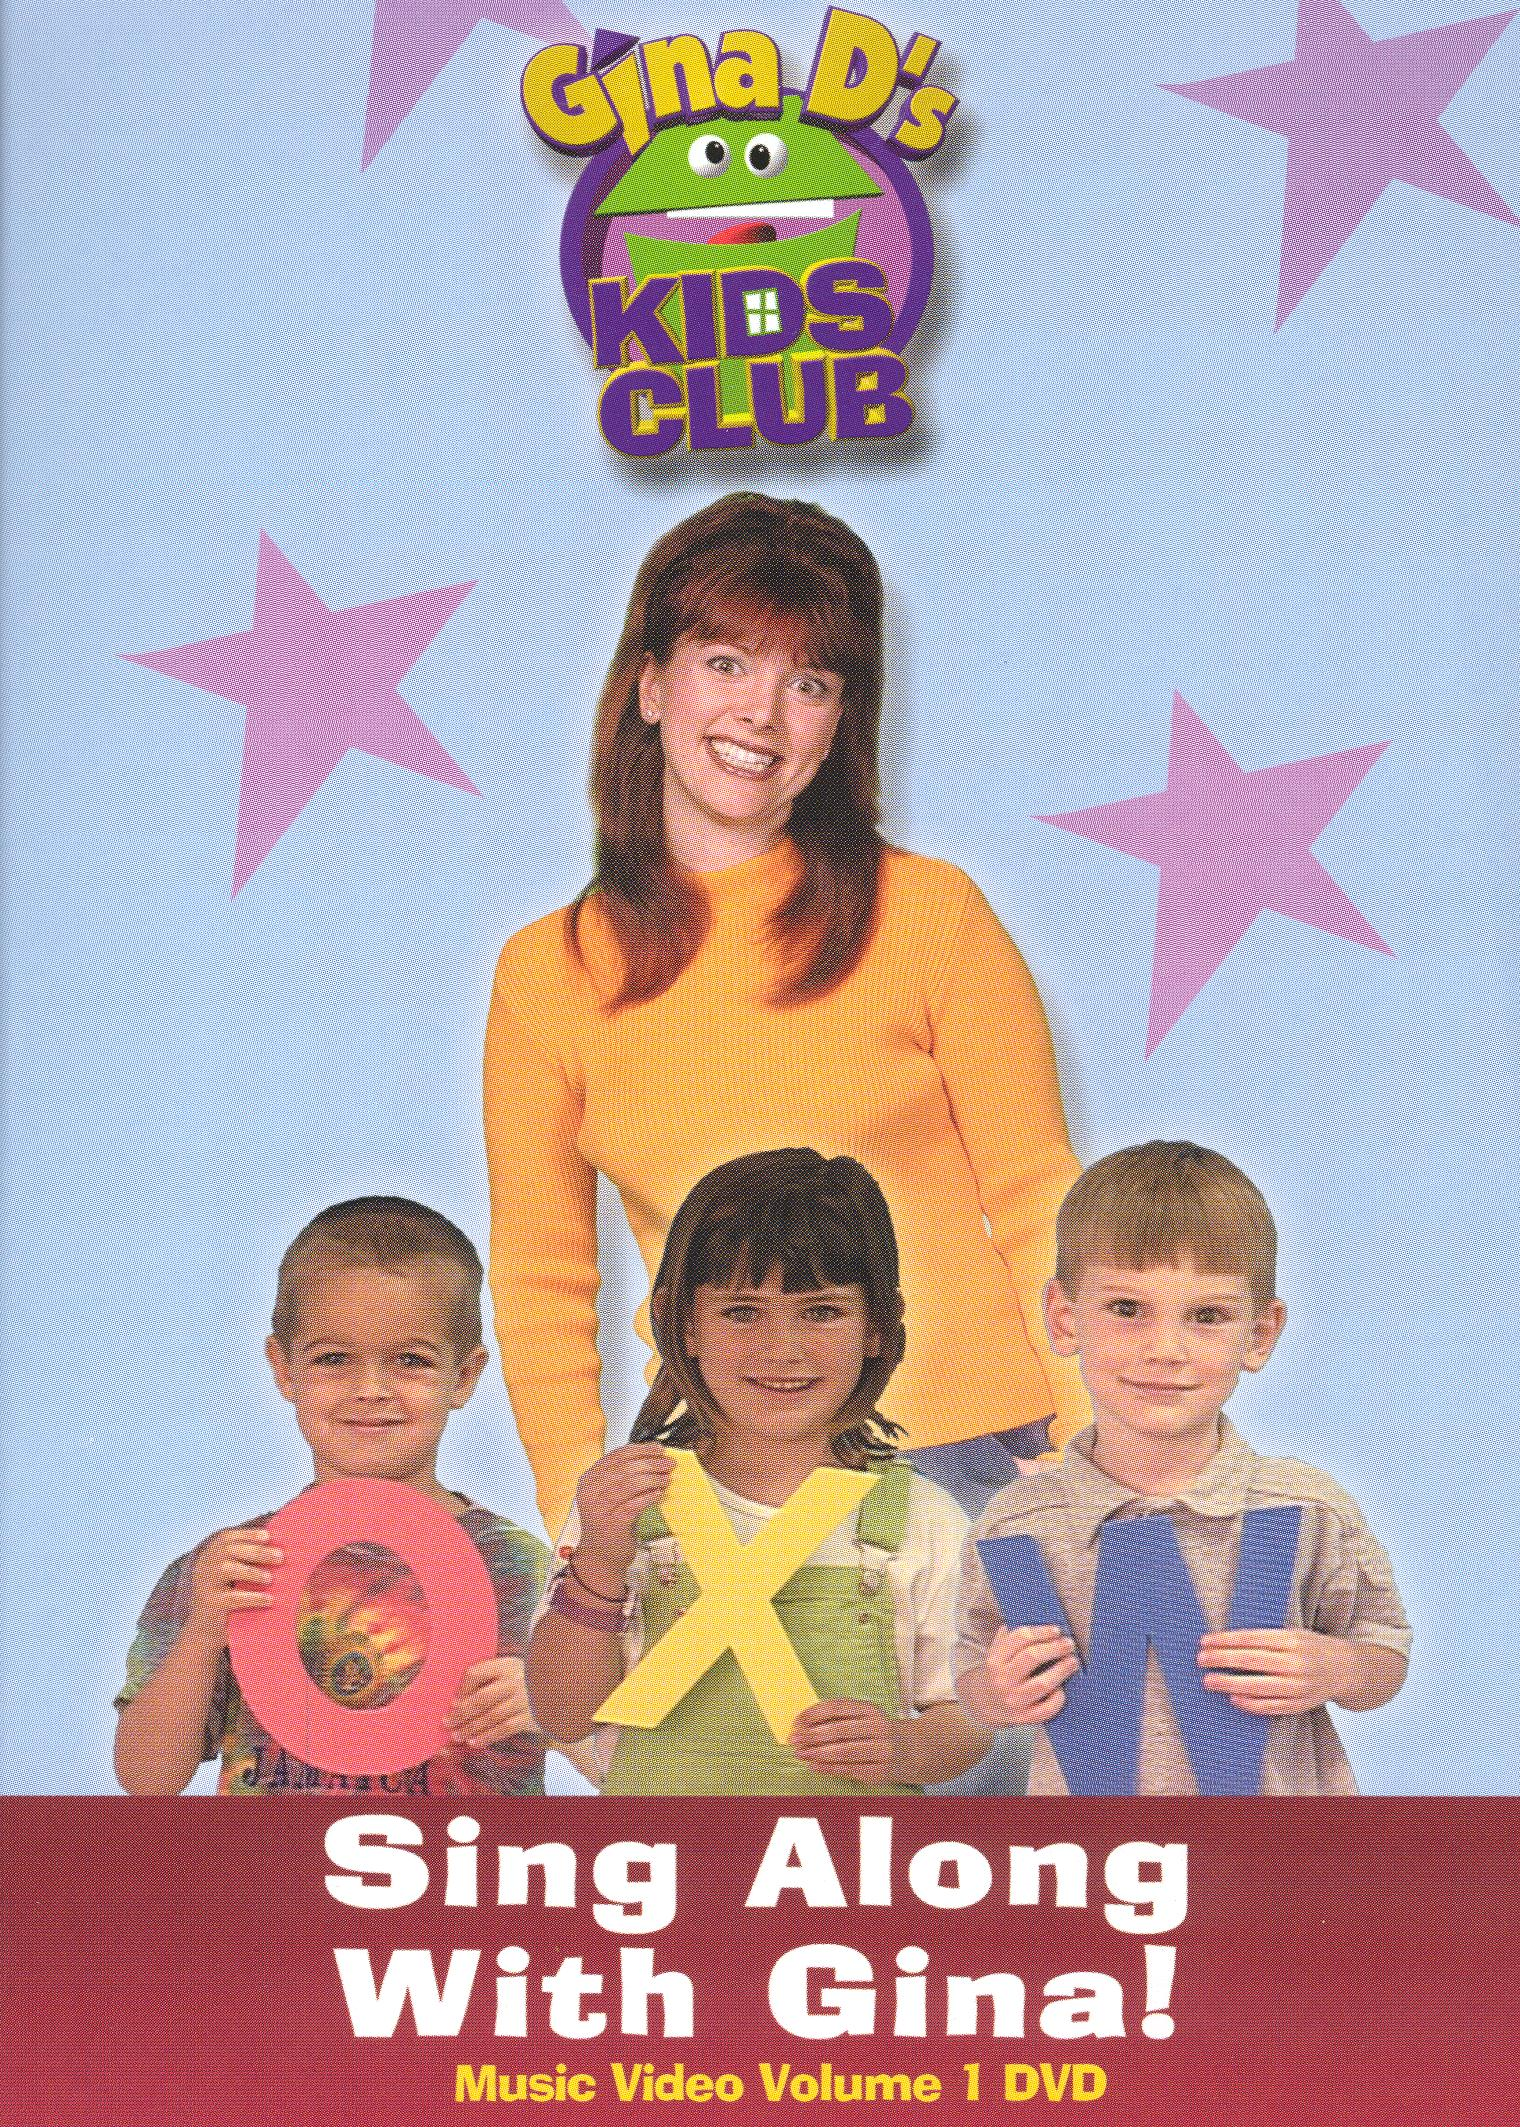 Gina D's Kids Club: Sing Along With Gina! Vol. 1